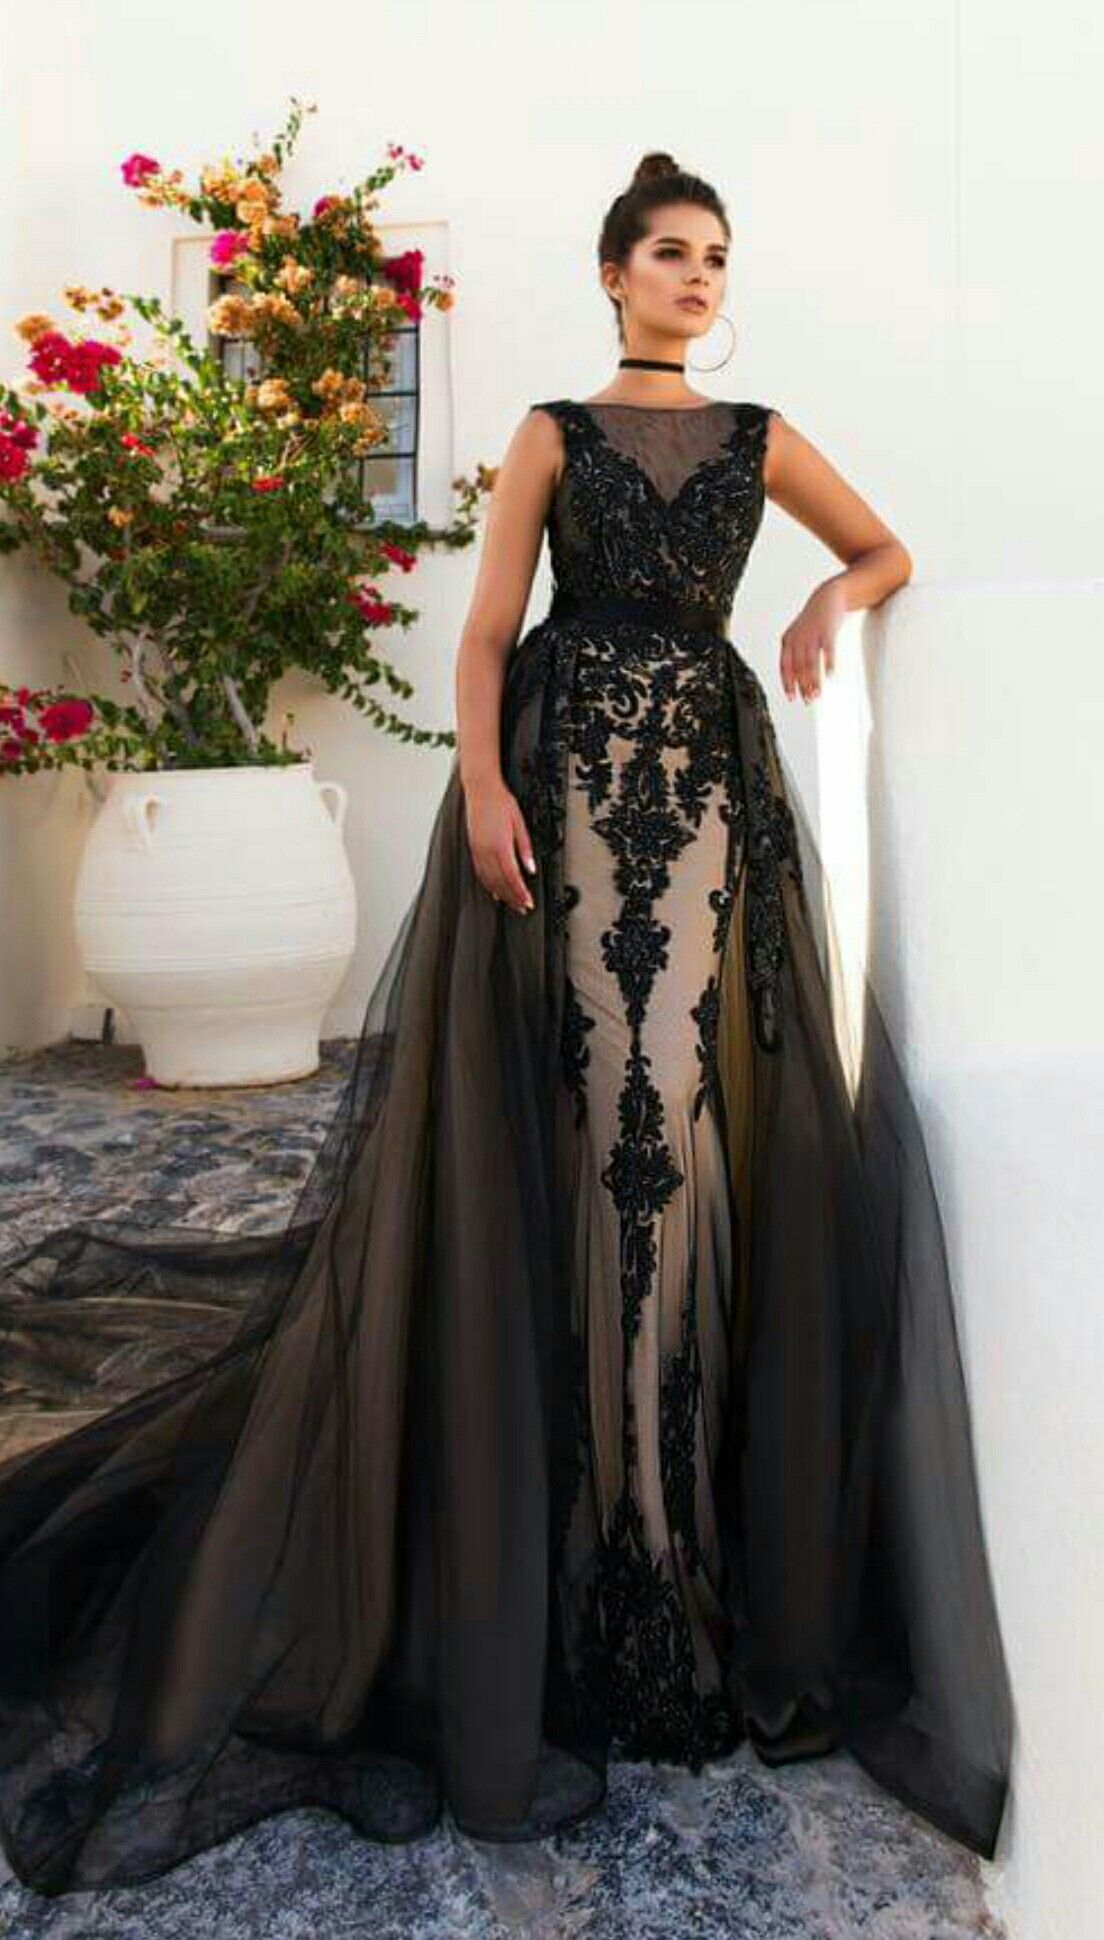 Pin by janna sergienko on promdress pinterest